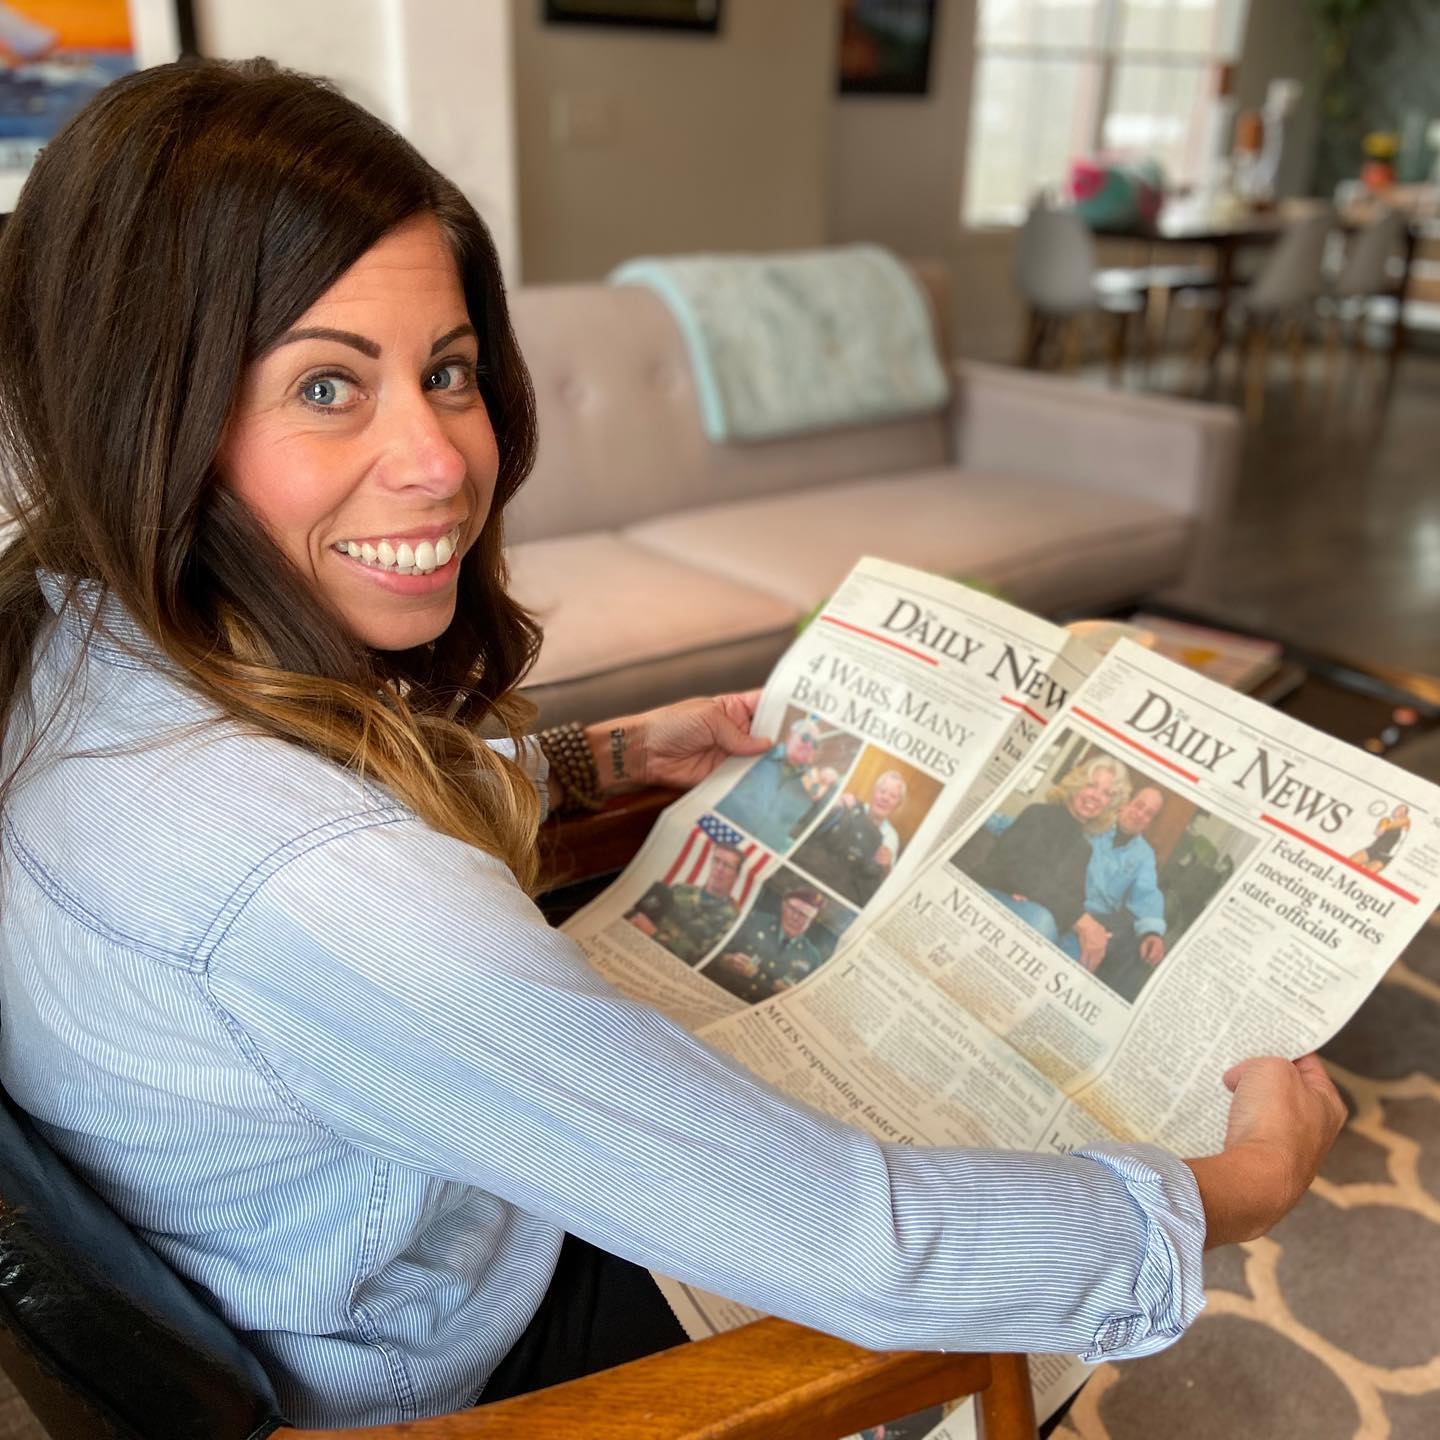 Lauren Befus, personal historian, featured in the TheDailyNews.cc